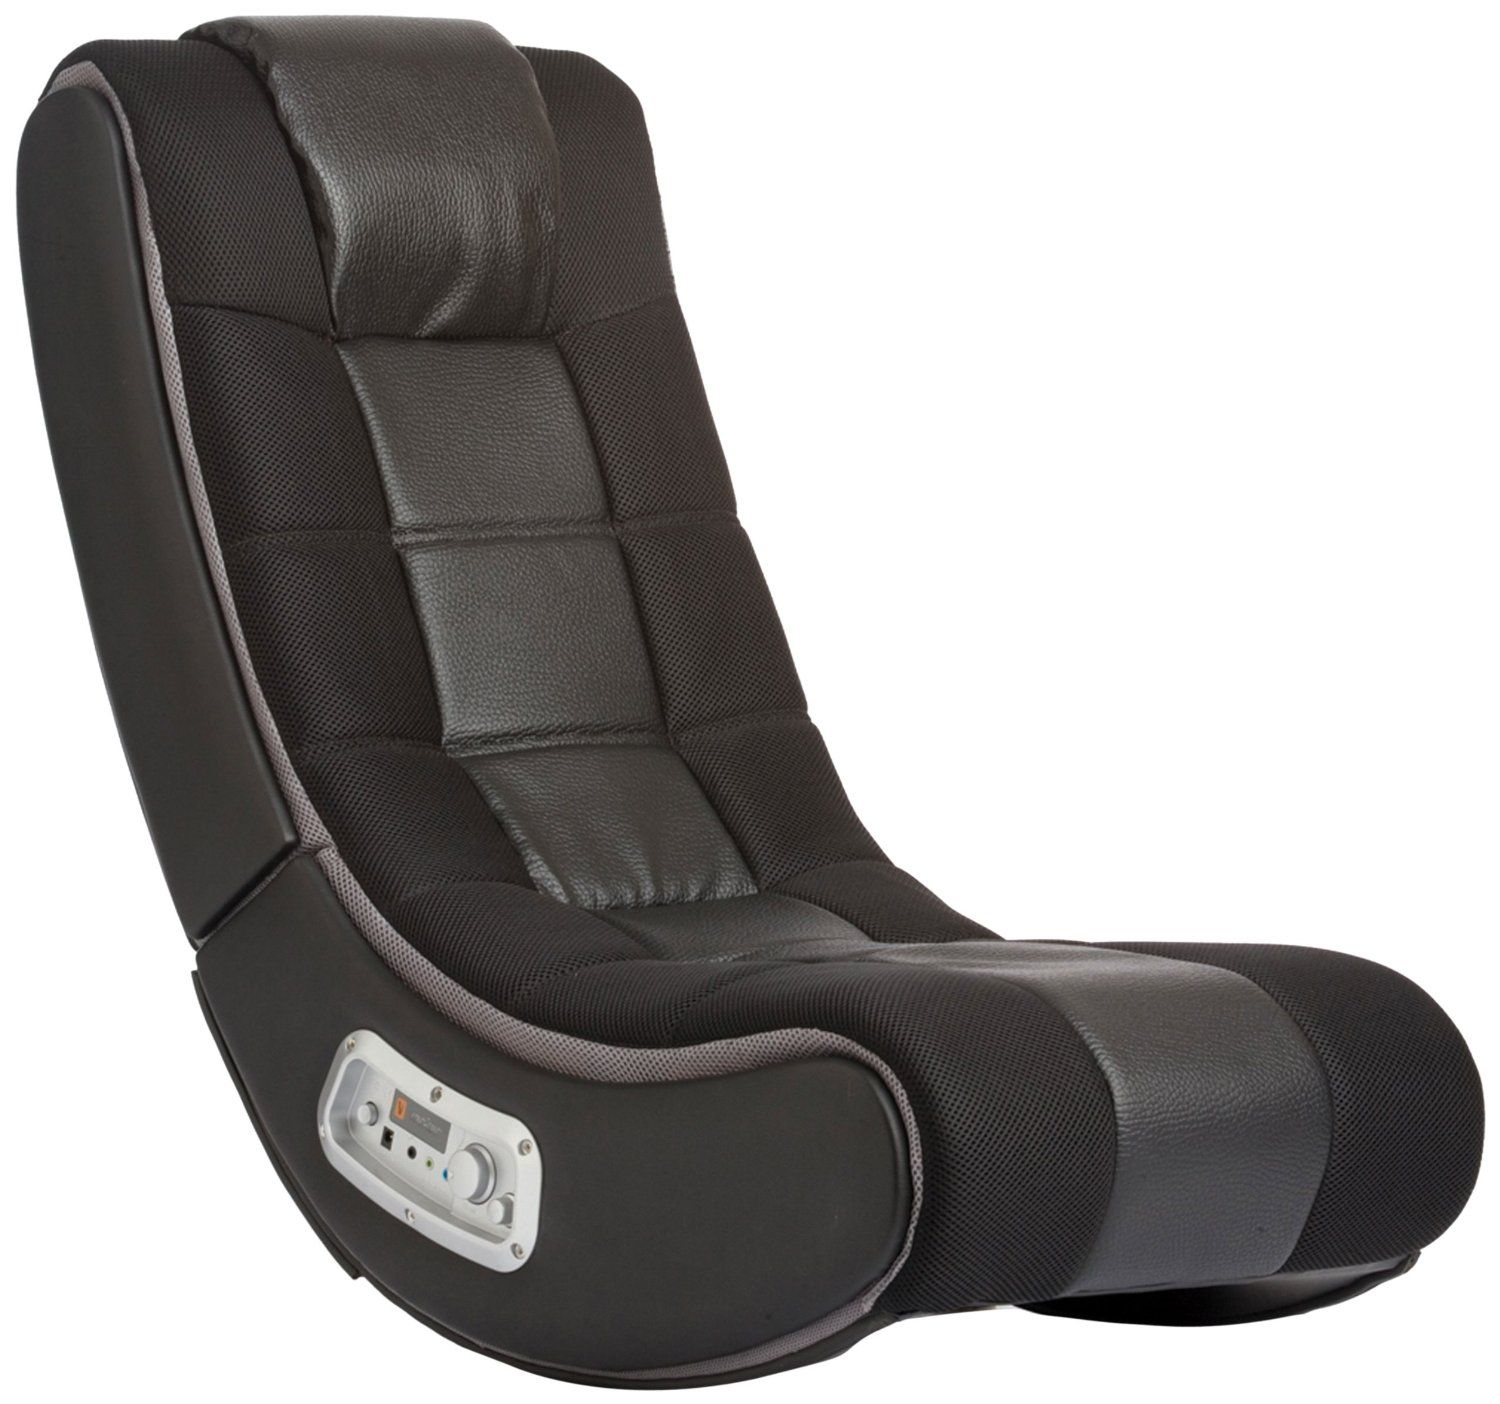 Best Video Gaming Chairs Reviews 2016 Gaming chair